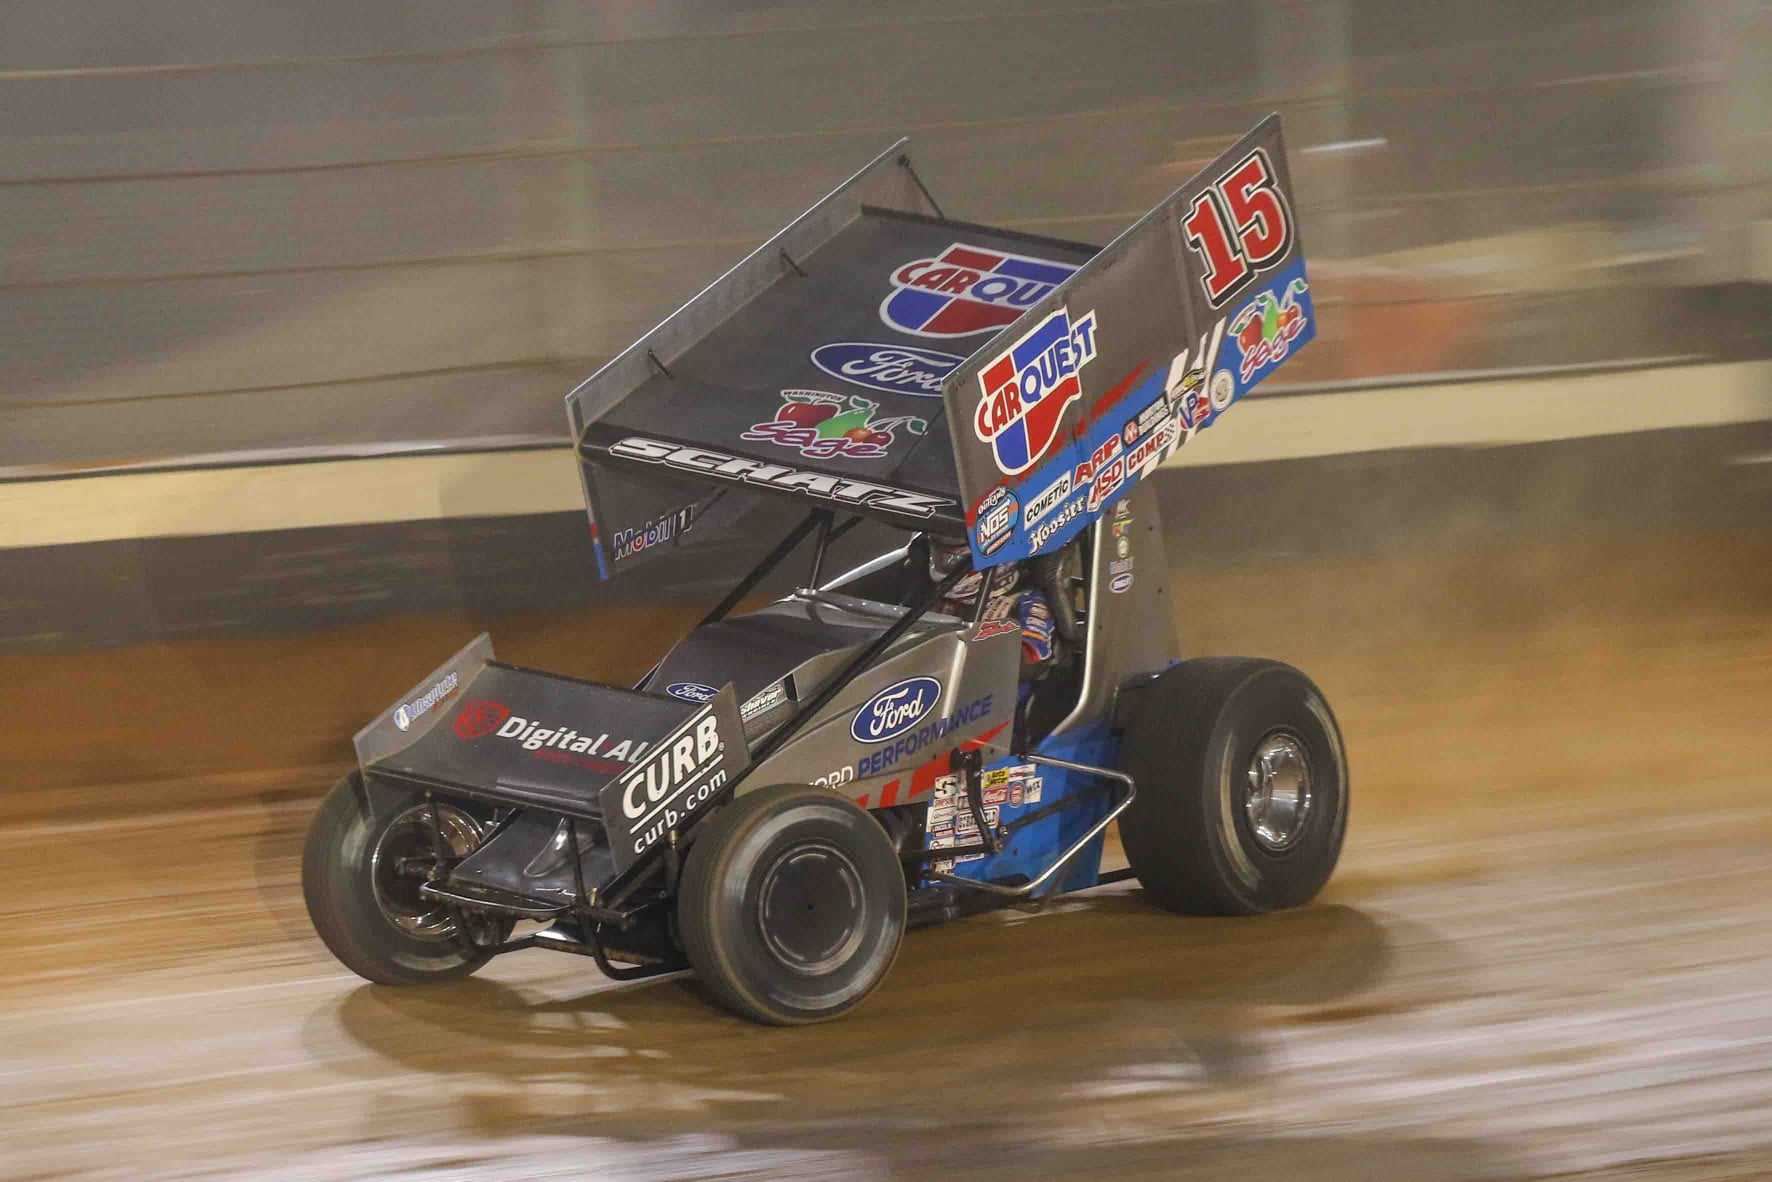 Donny Schatz, bristol motor speedway, world of outlaws